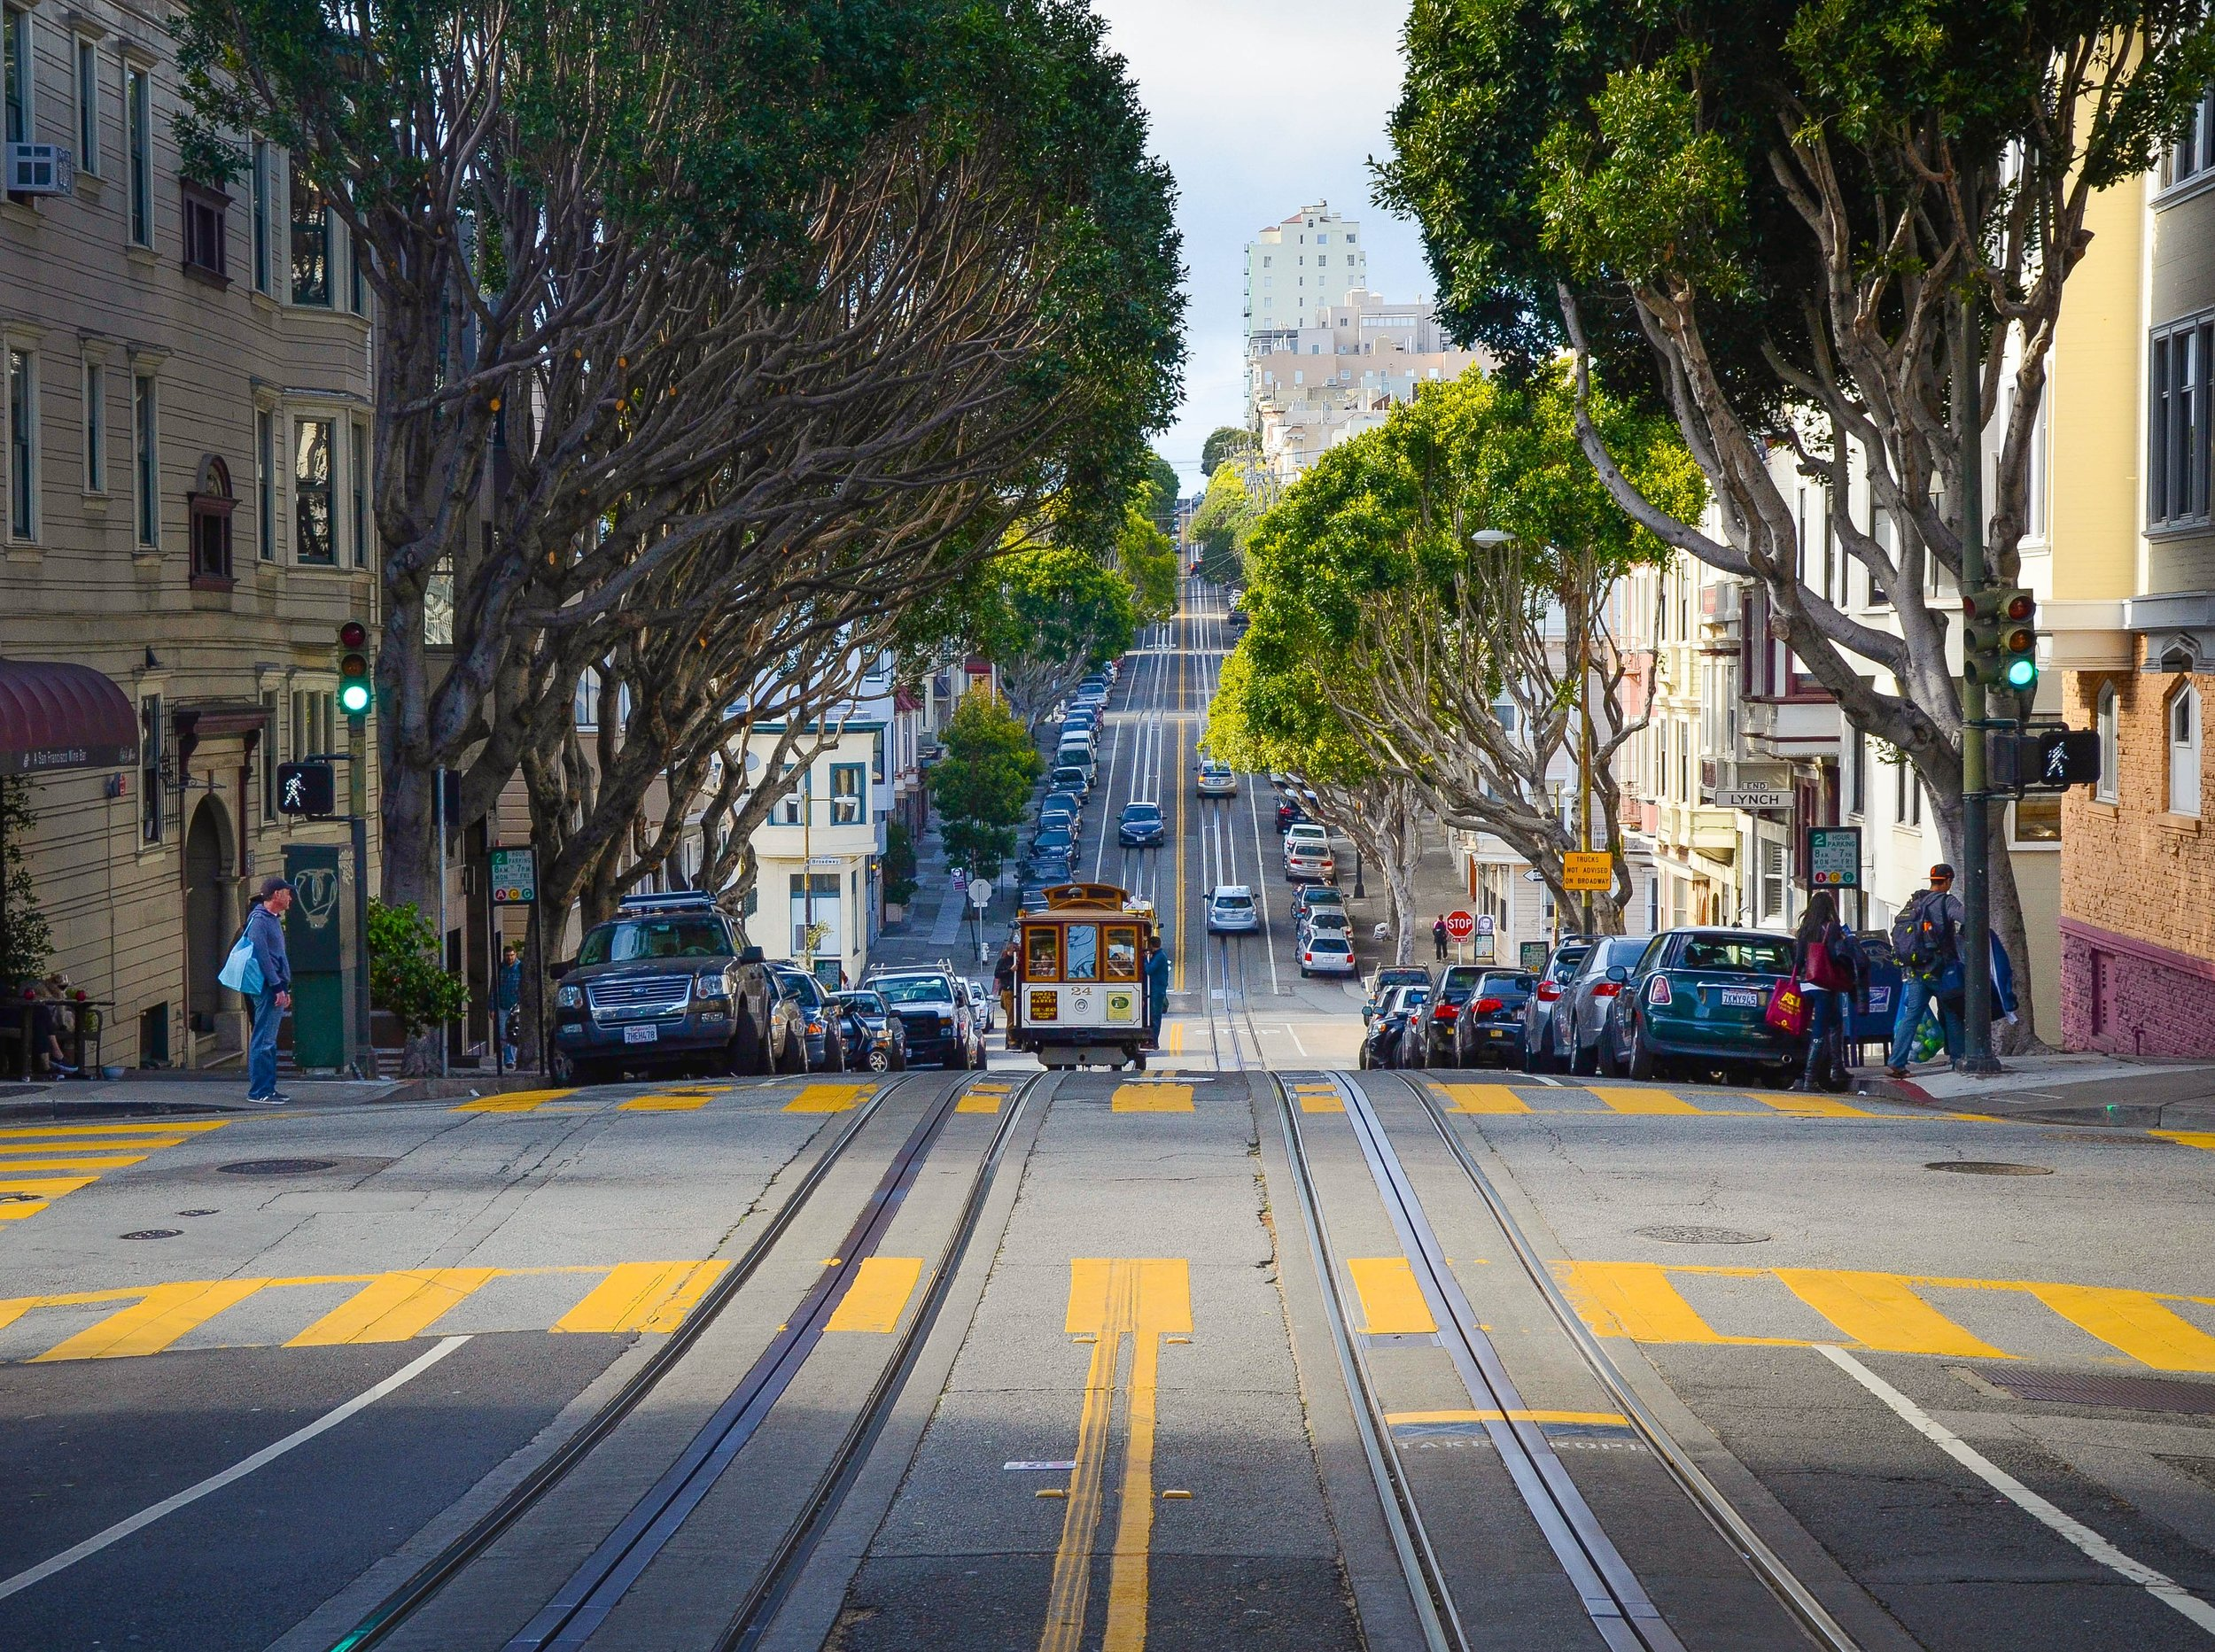 San Francisco Sales Mission - February 26 - February 27Select key agencies visits will be part of the program across the beautiful Bay City.